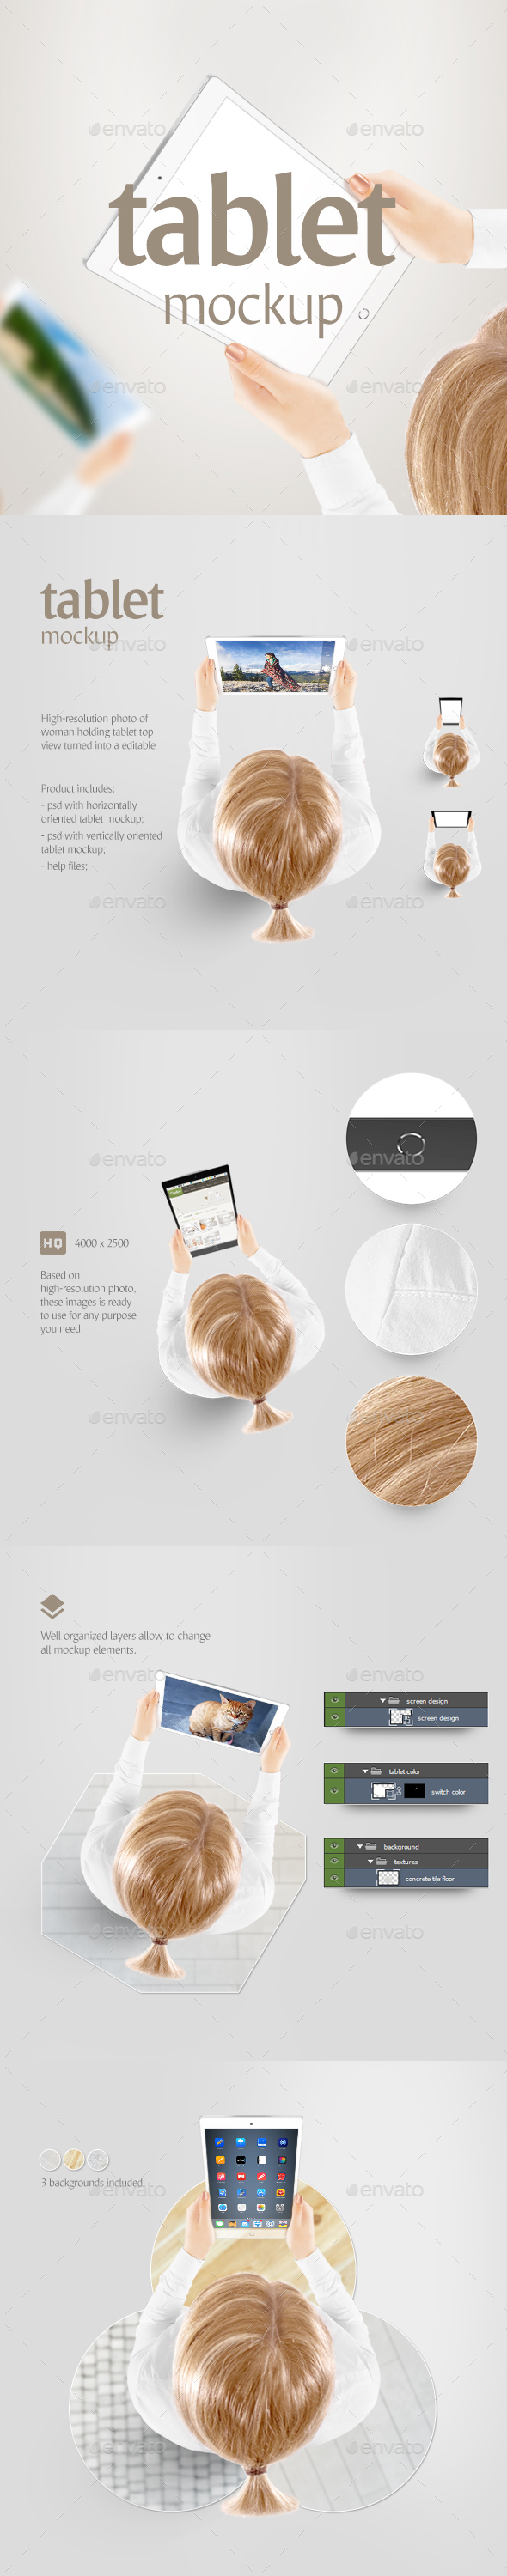 Tablet Mockup - Displays Product Mock-Ups